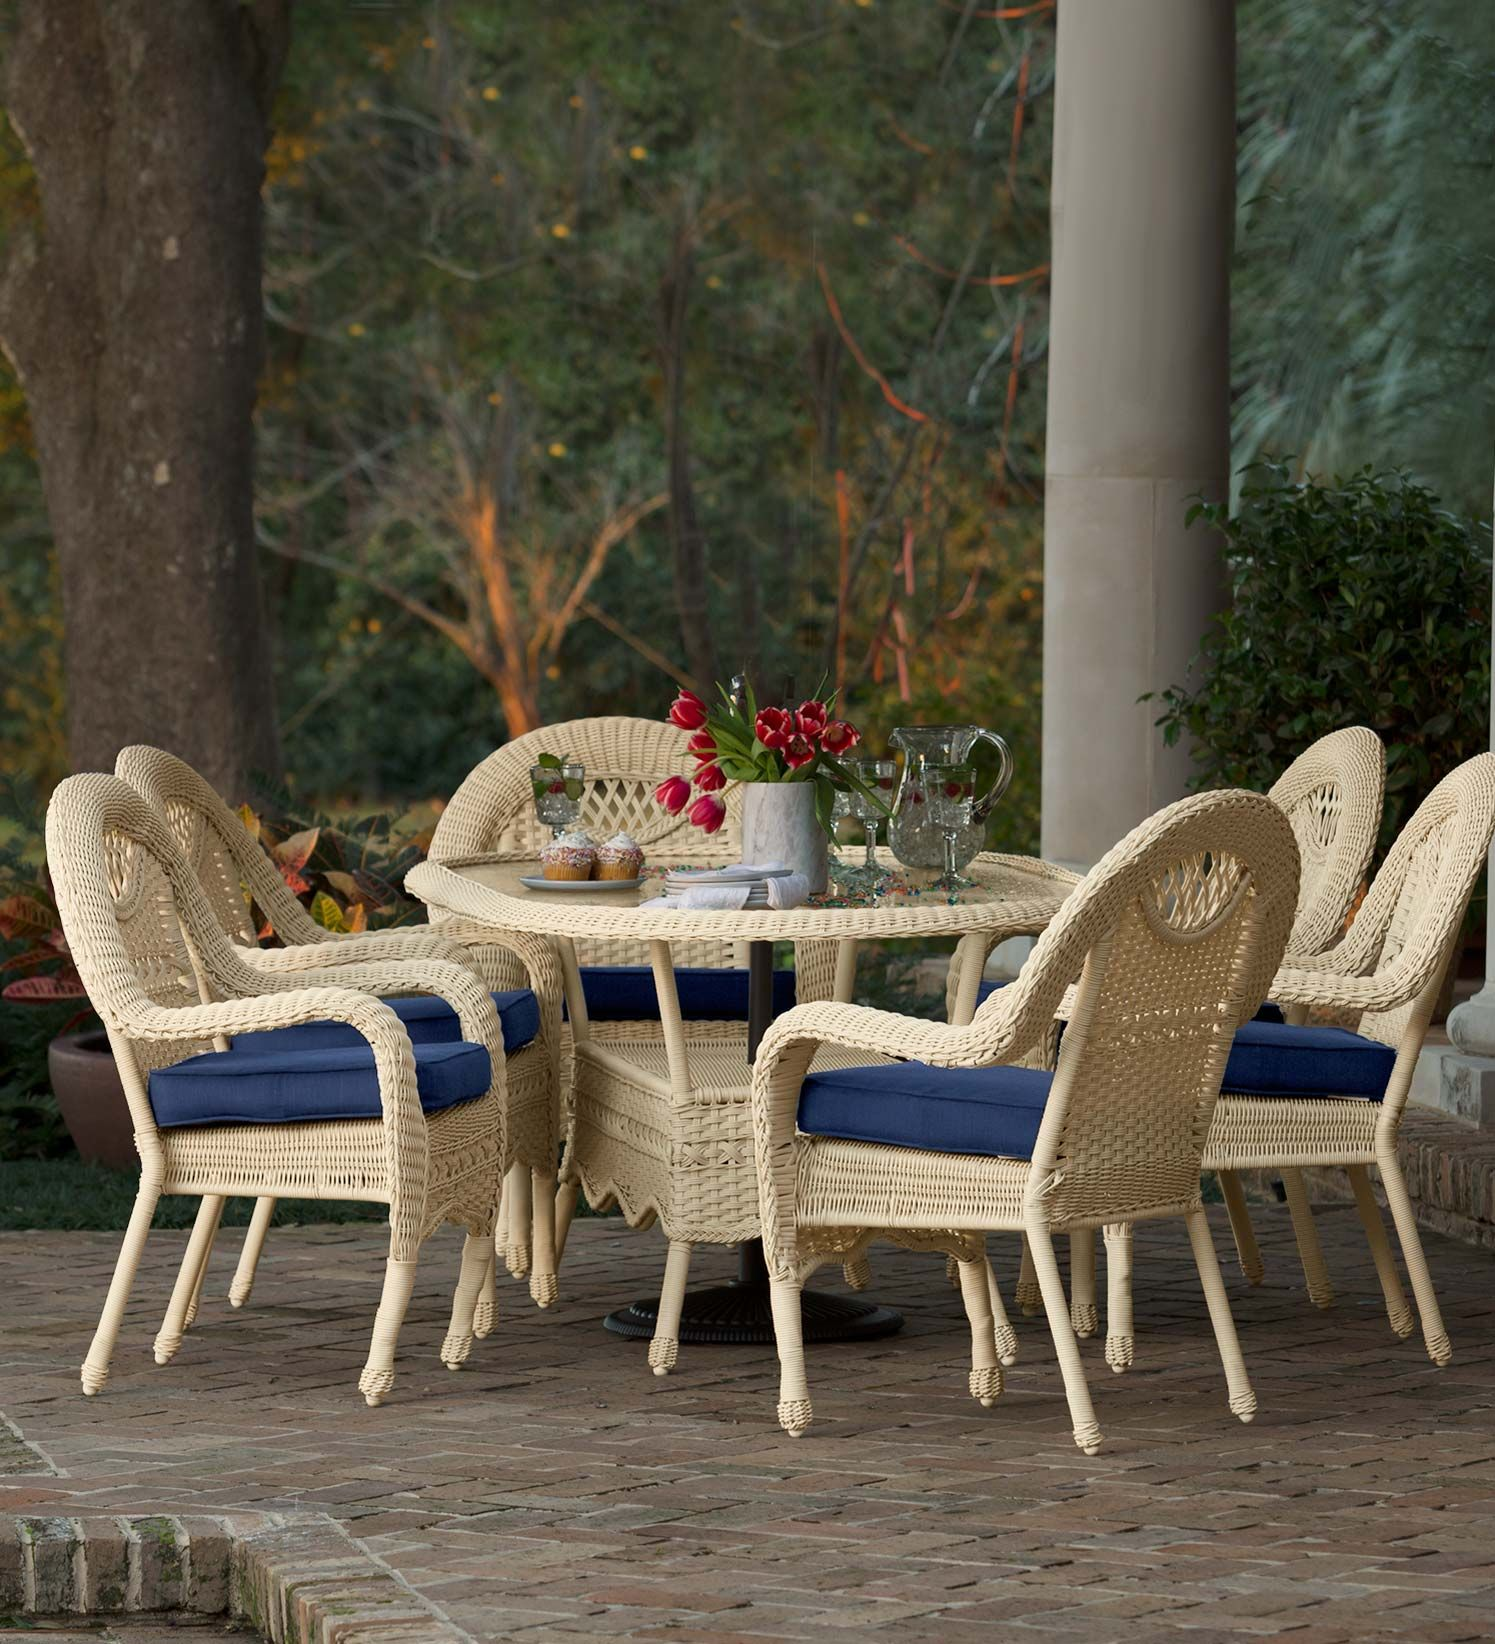 Sensational Pin On Patio Furniture Accents Gmtry Best Dining Table And Chair Ideas Images Gmtryco